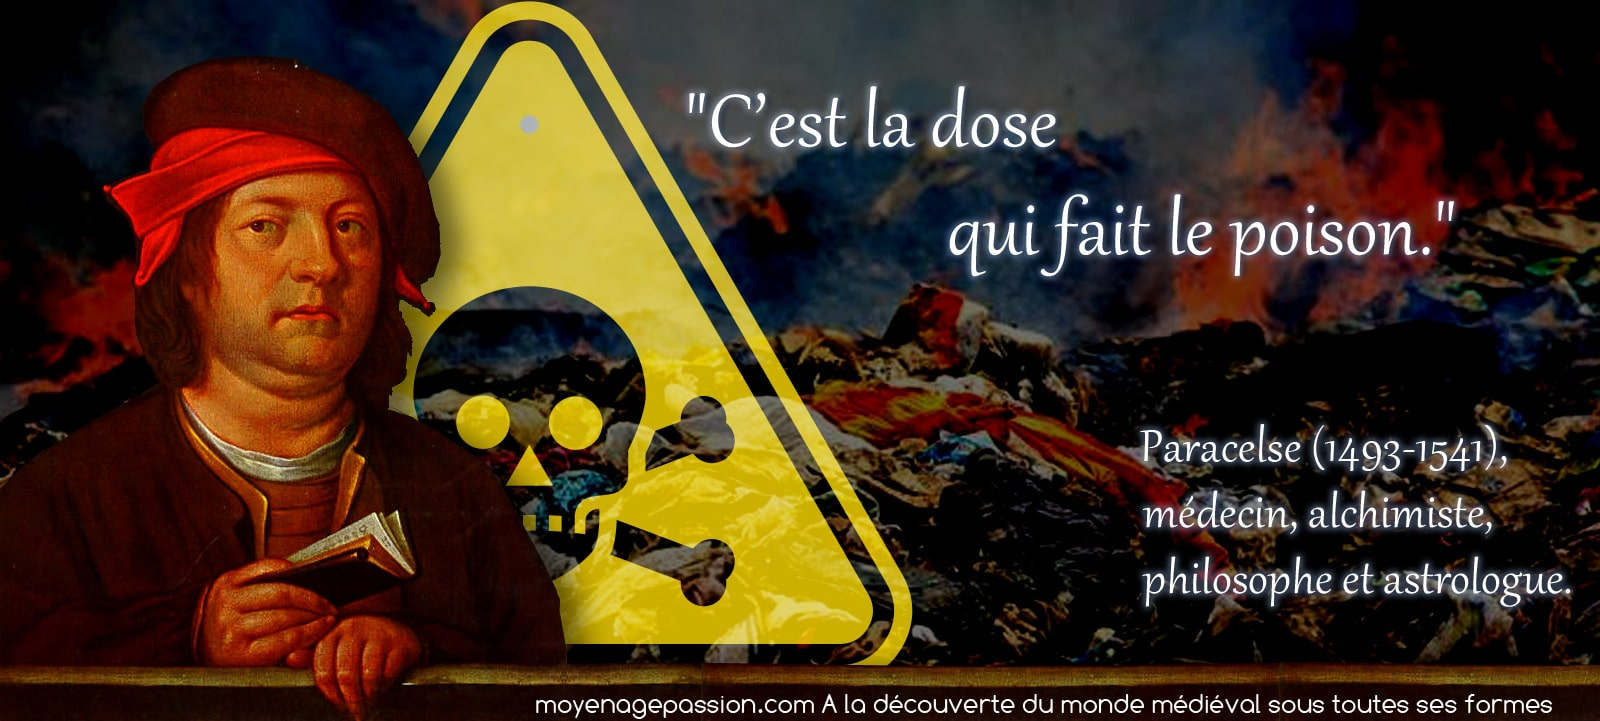 citation_medievale_paracelse_moyen-age_dose_poison_homeopathie